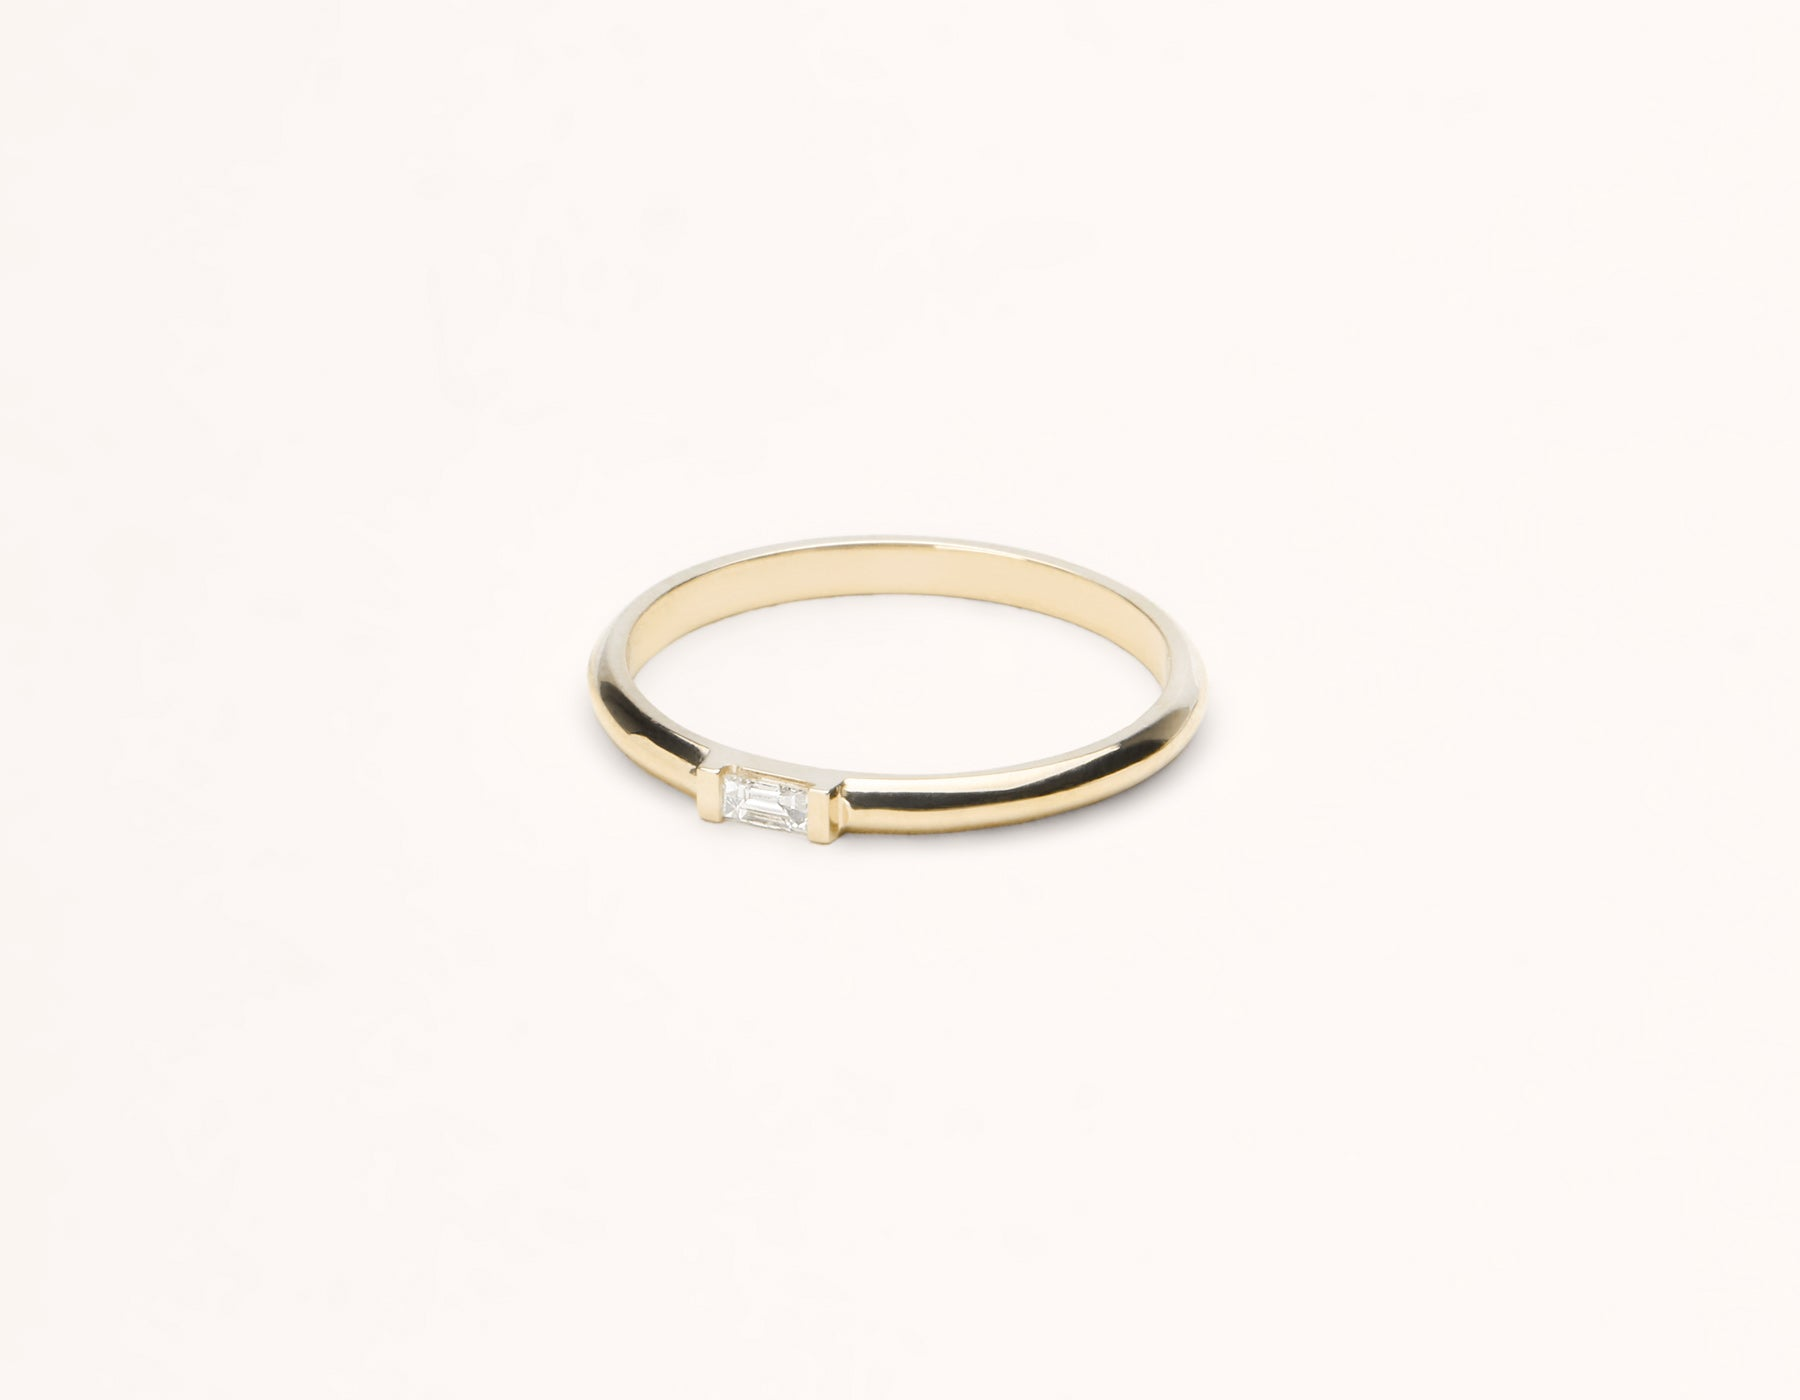 Sleek Minimalist 14k solid gold Baguette Diamond Ring with rounded band by Vrai and Oro, 14K Yellow Gold